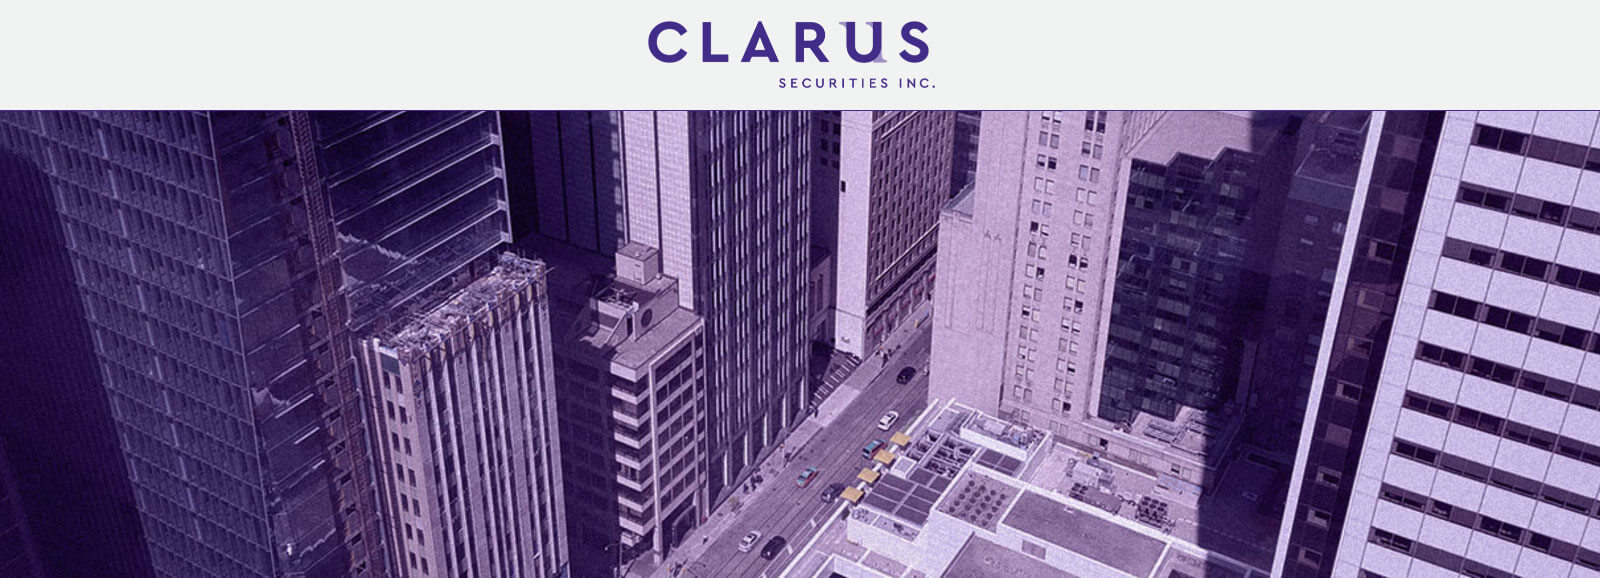 Clarus Securities